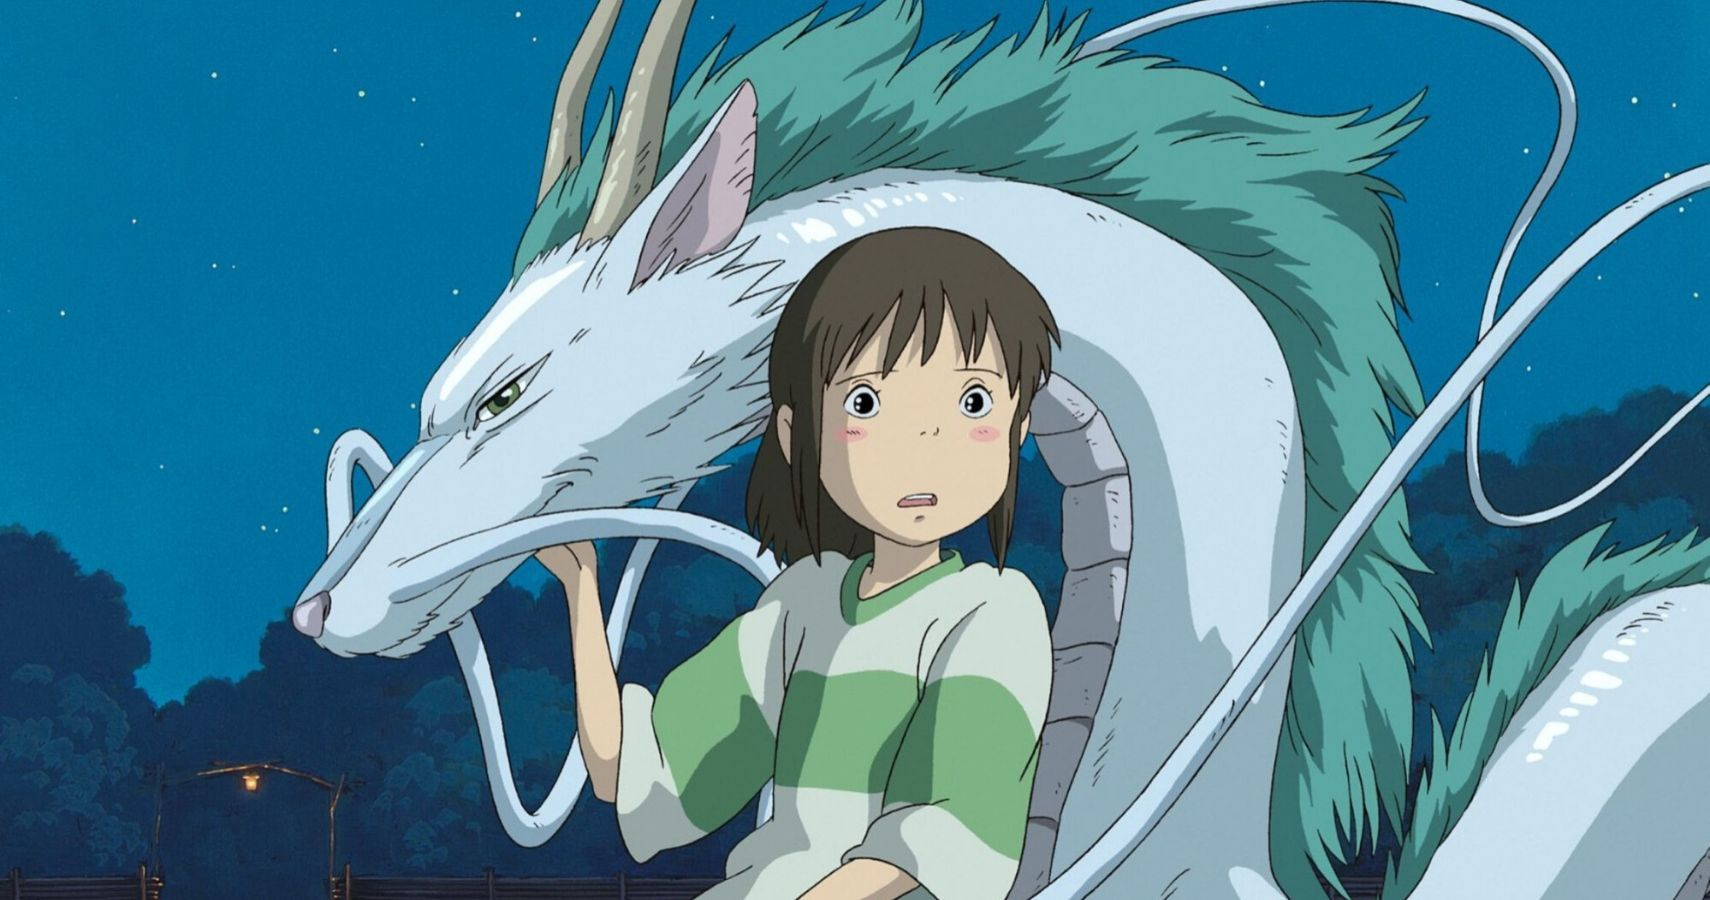 10 Best Spirited Away Tattoos That Will Make You Want To Get Inked